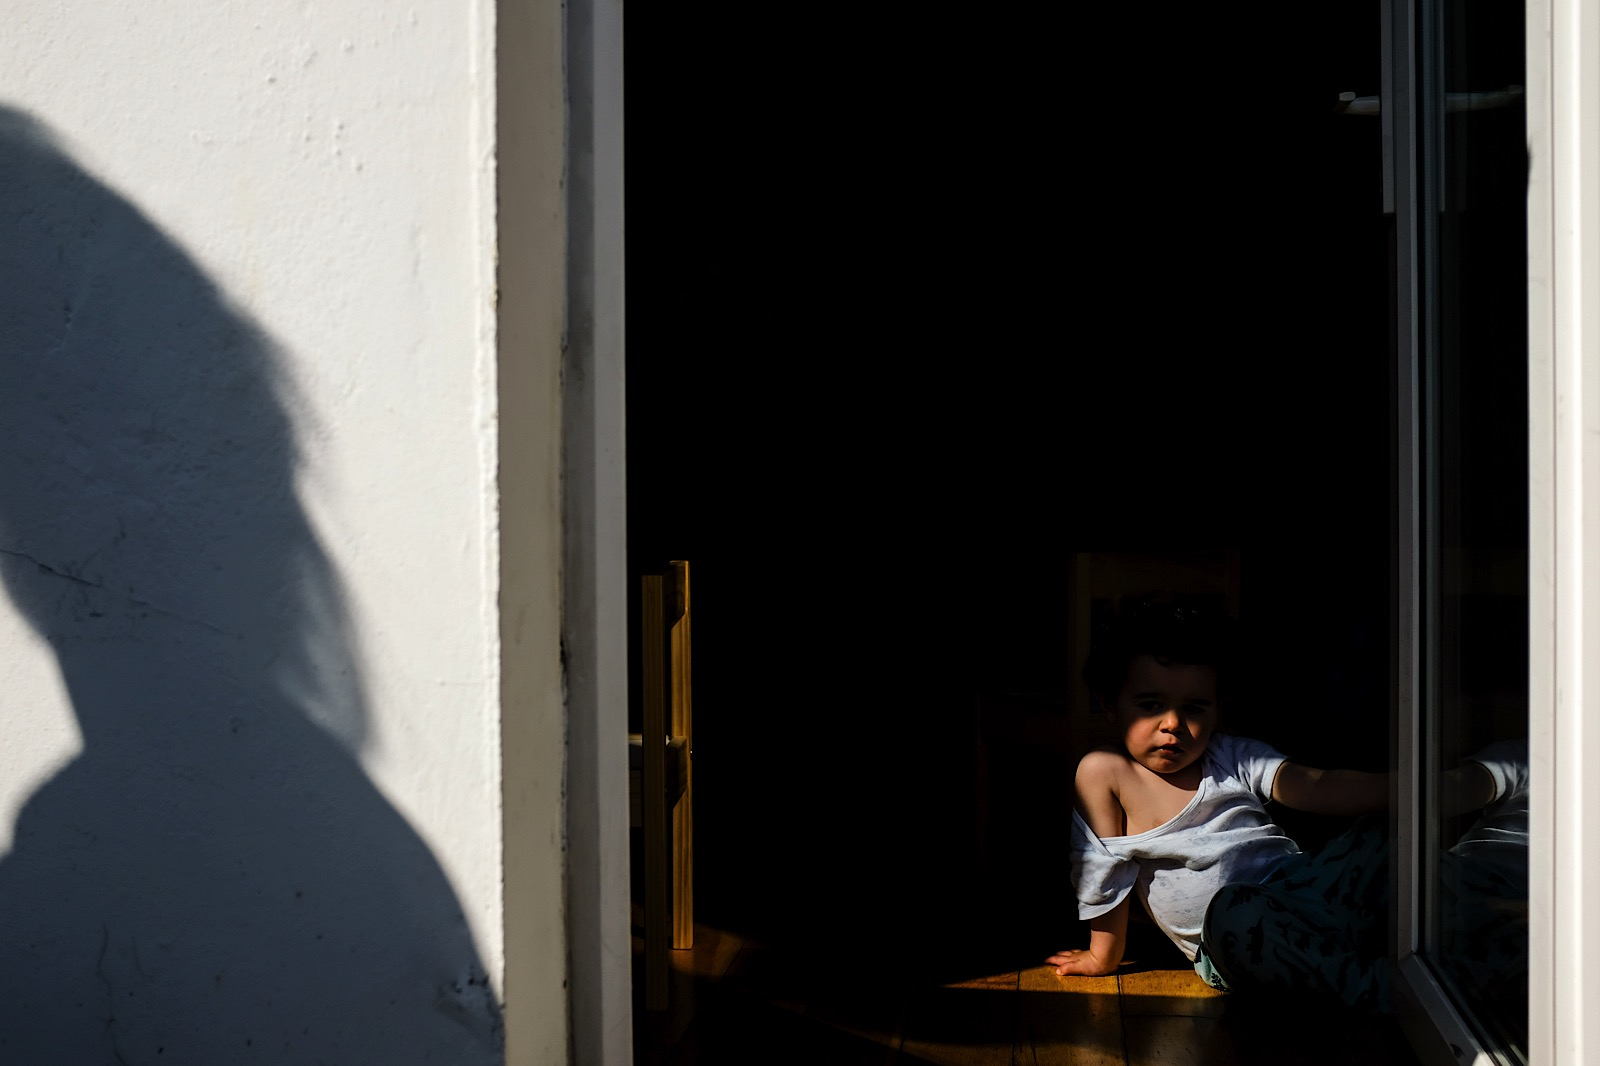 Child caught in light sat on floor during Covid-19